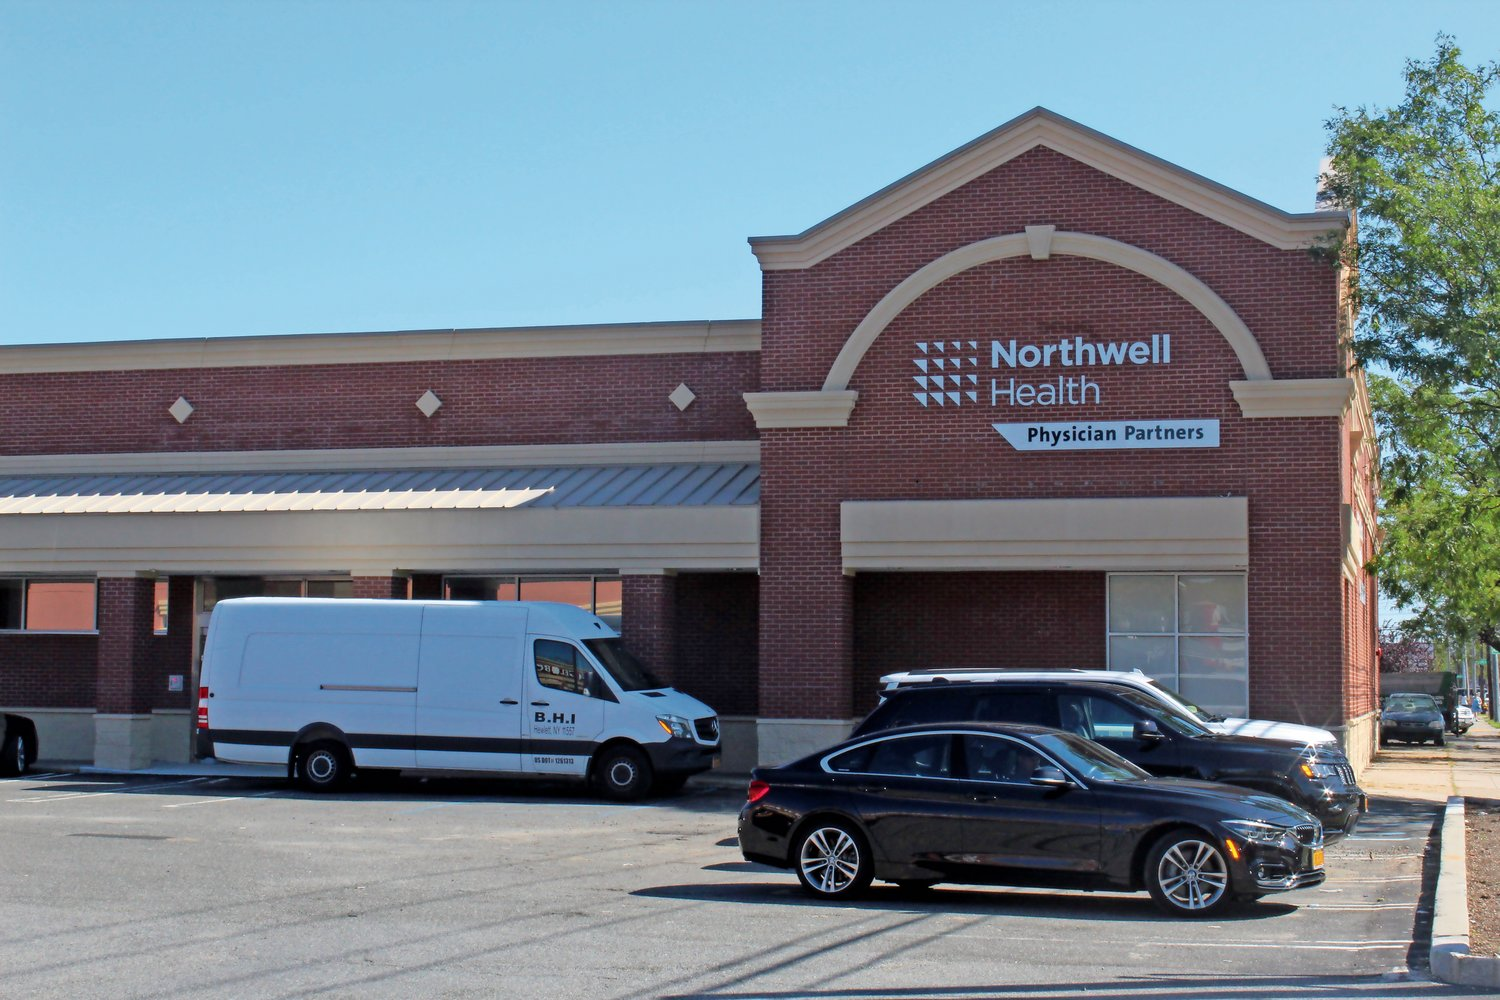 A new multi-specialty health care facility commissioned by Northwell Health will open in Merrick on Sept. 16.